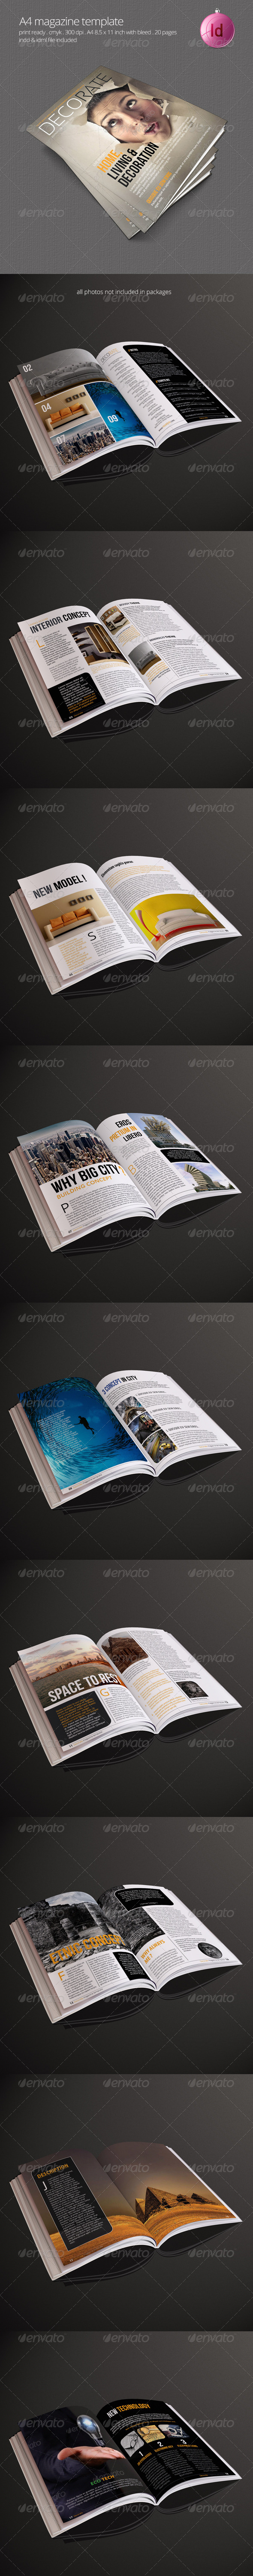 GraphicRiver A4 Magazine Template 7837132